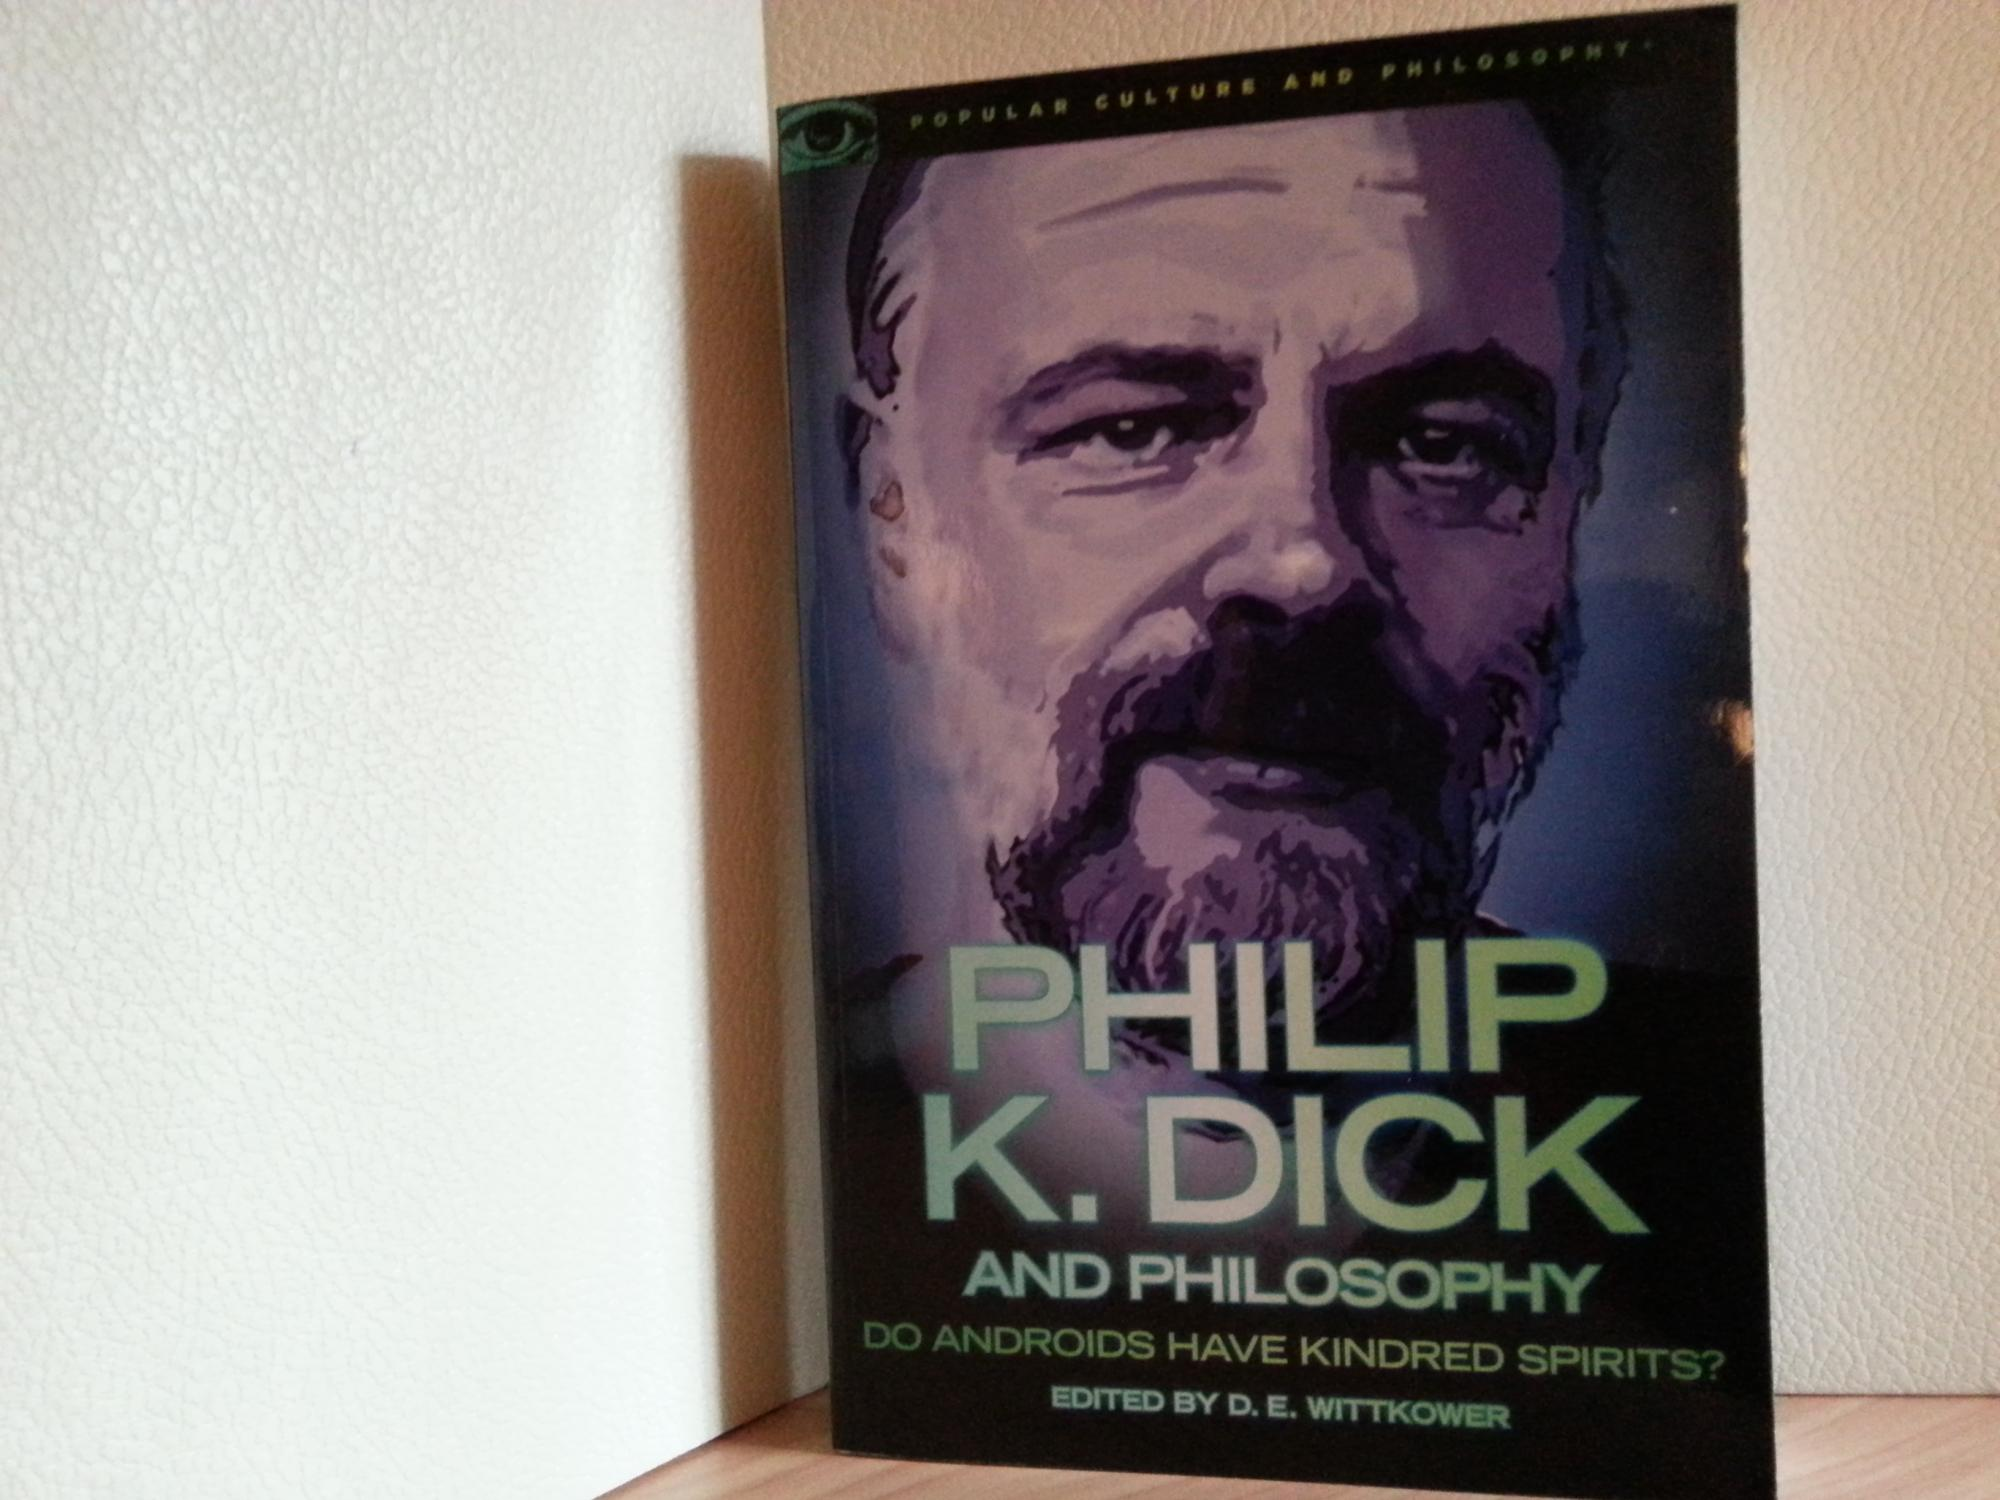 Philip K. Dick and Philosophy: Do Androids Have Kindred Spirits? (Popular Culture and Philosophy)